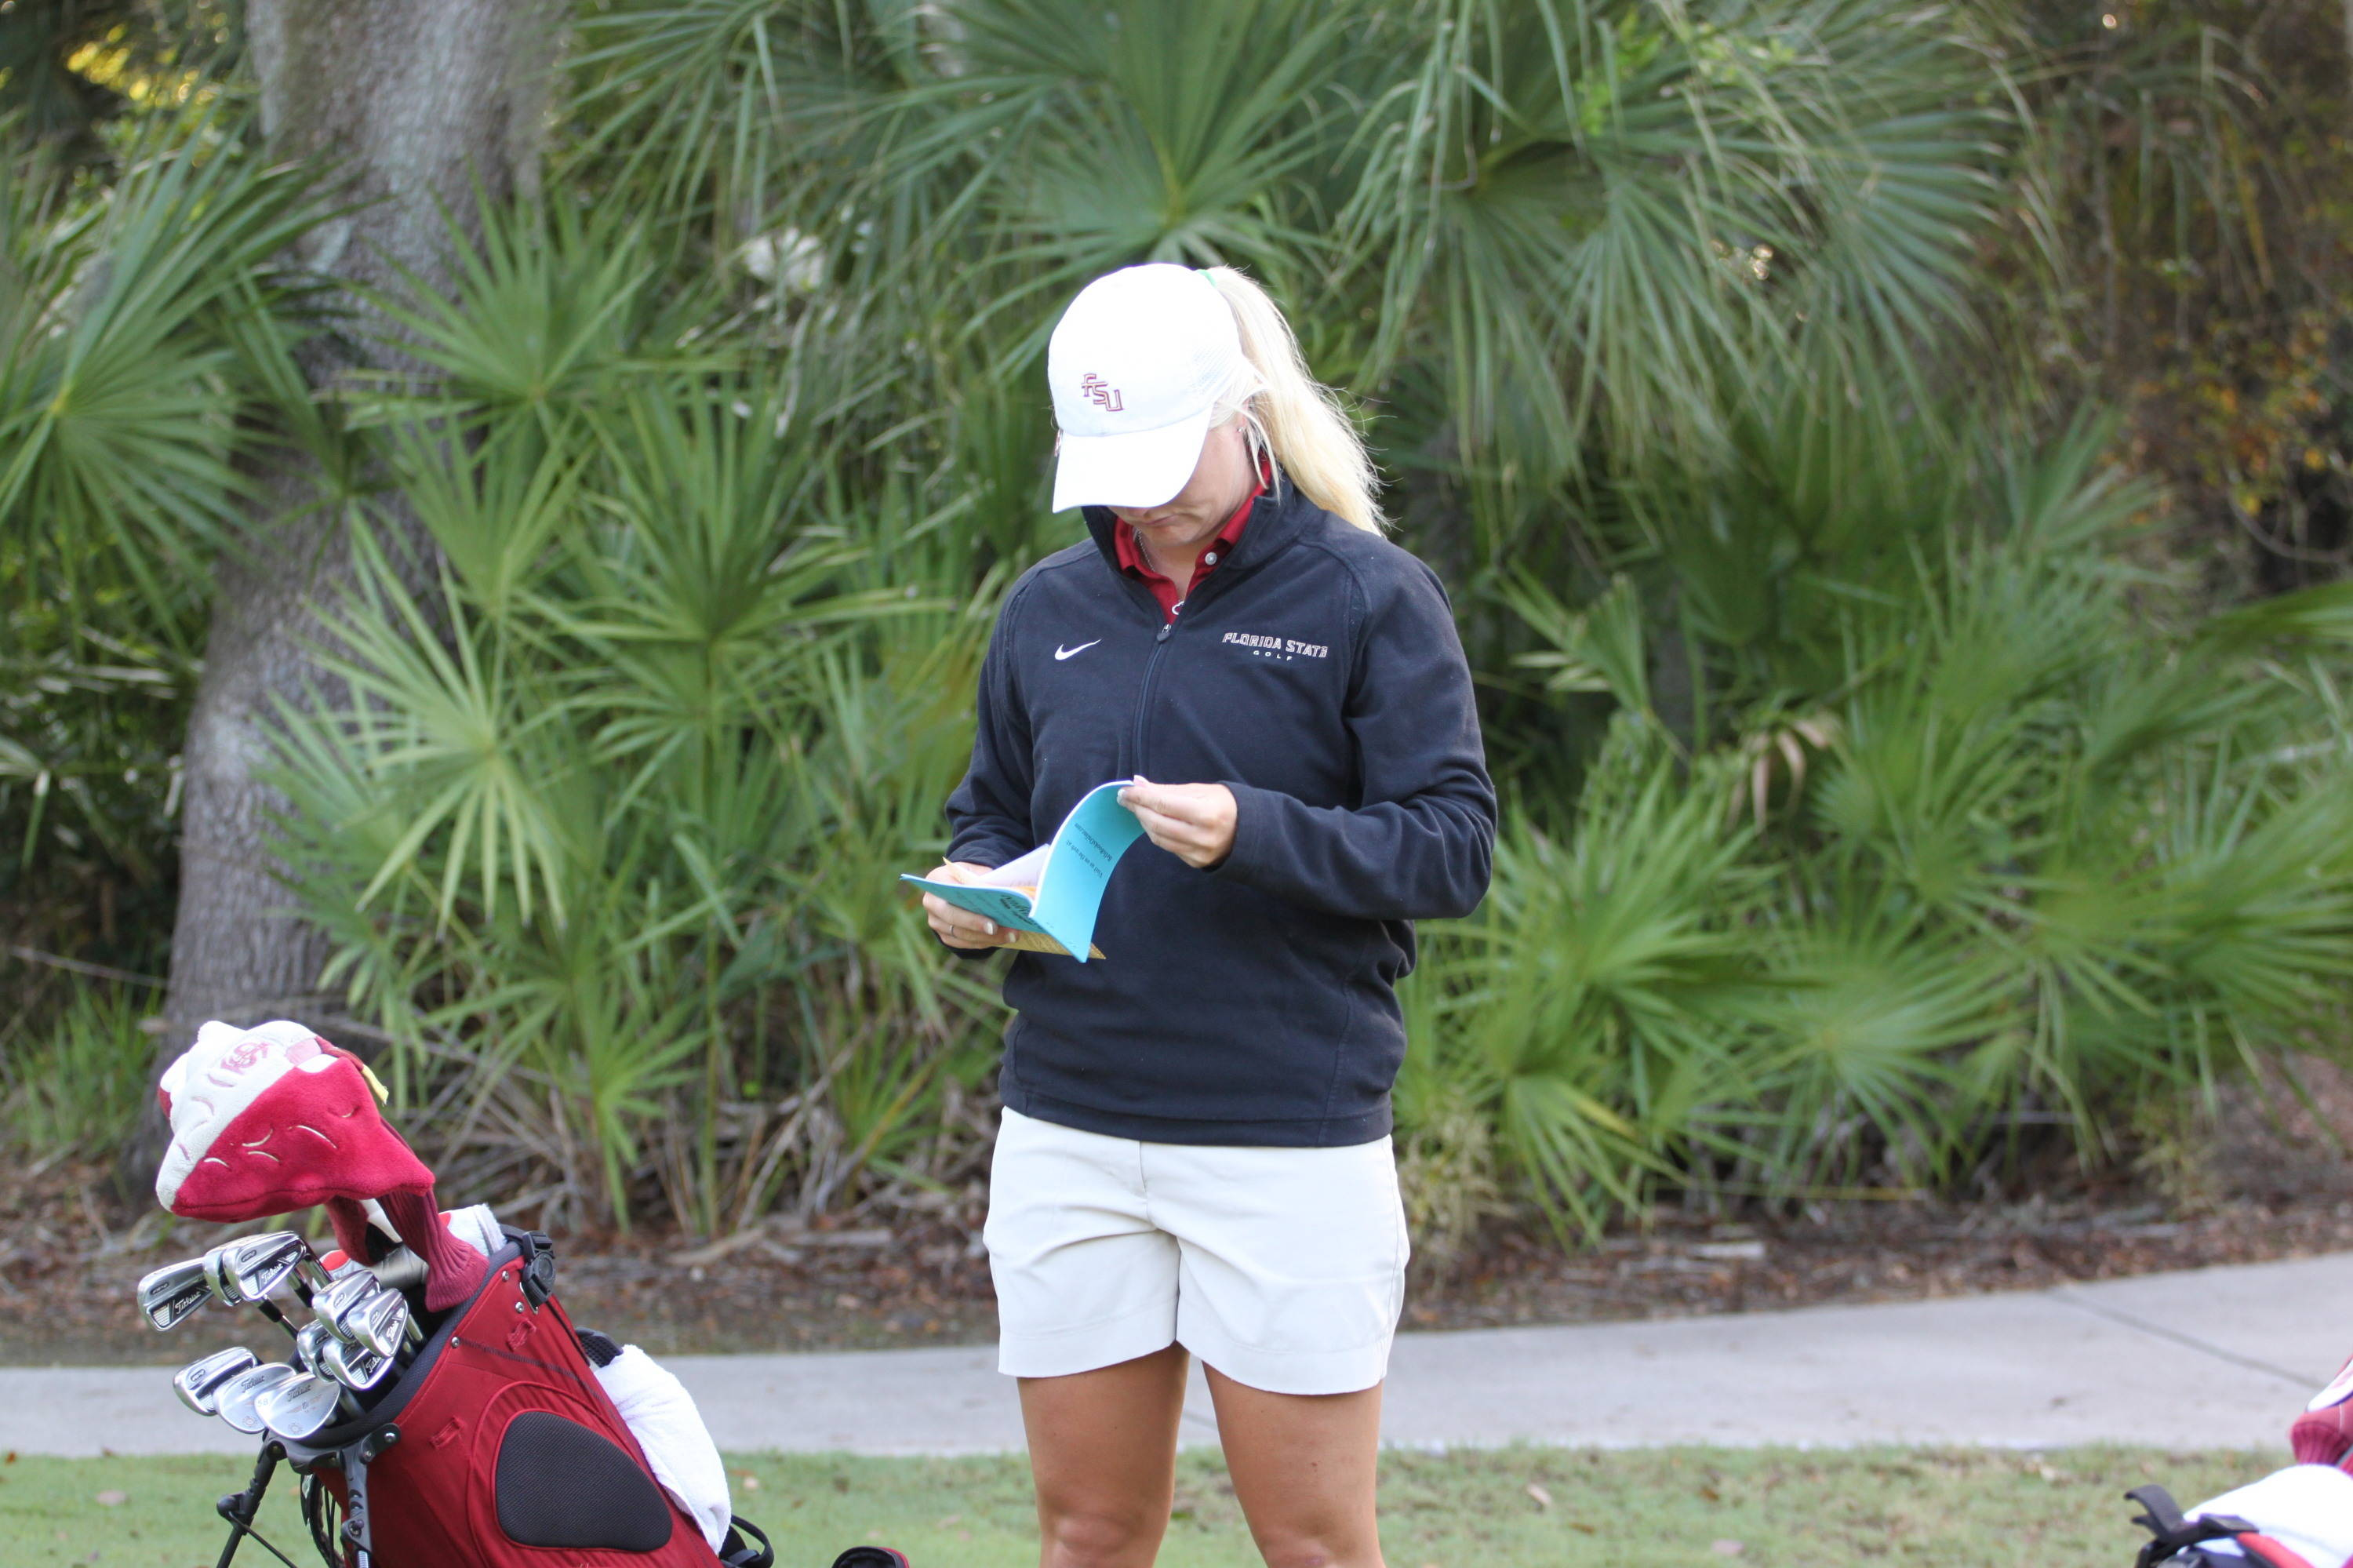 2011 NCAA Golf -- Hannah Thomson studies his yardage book in preparation for her round,